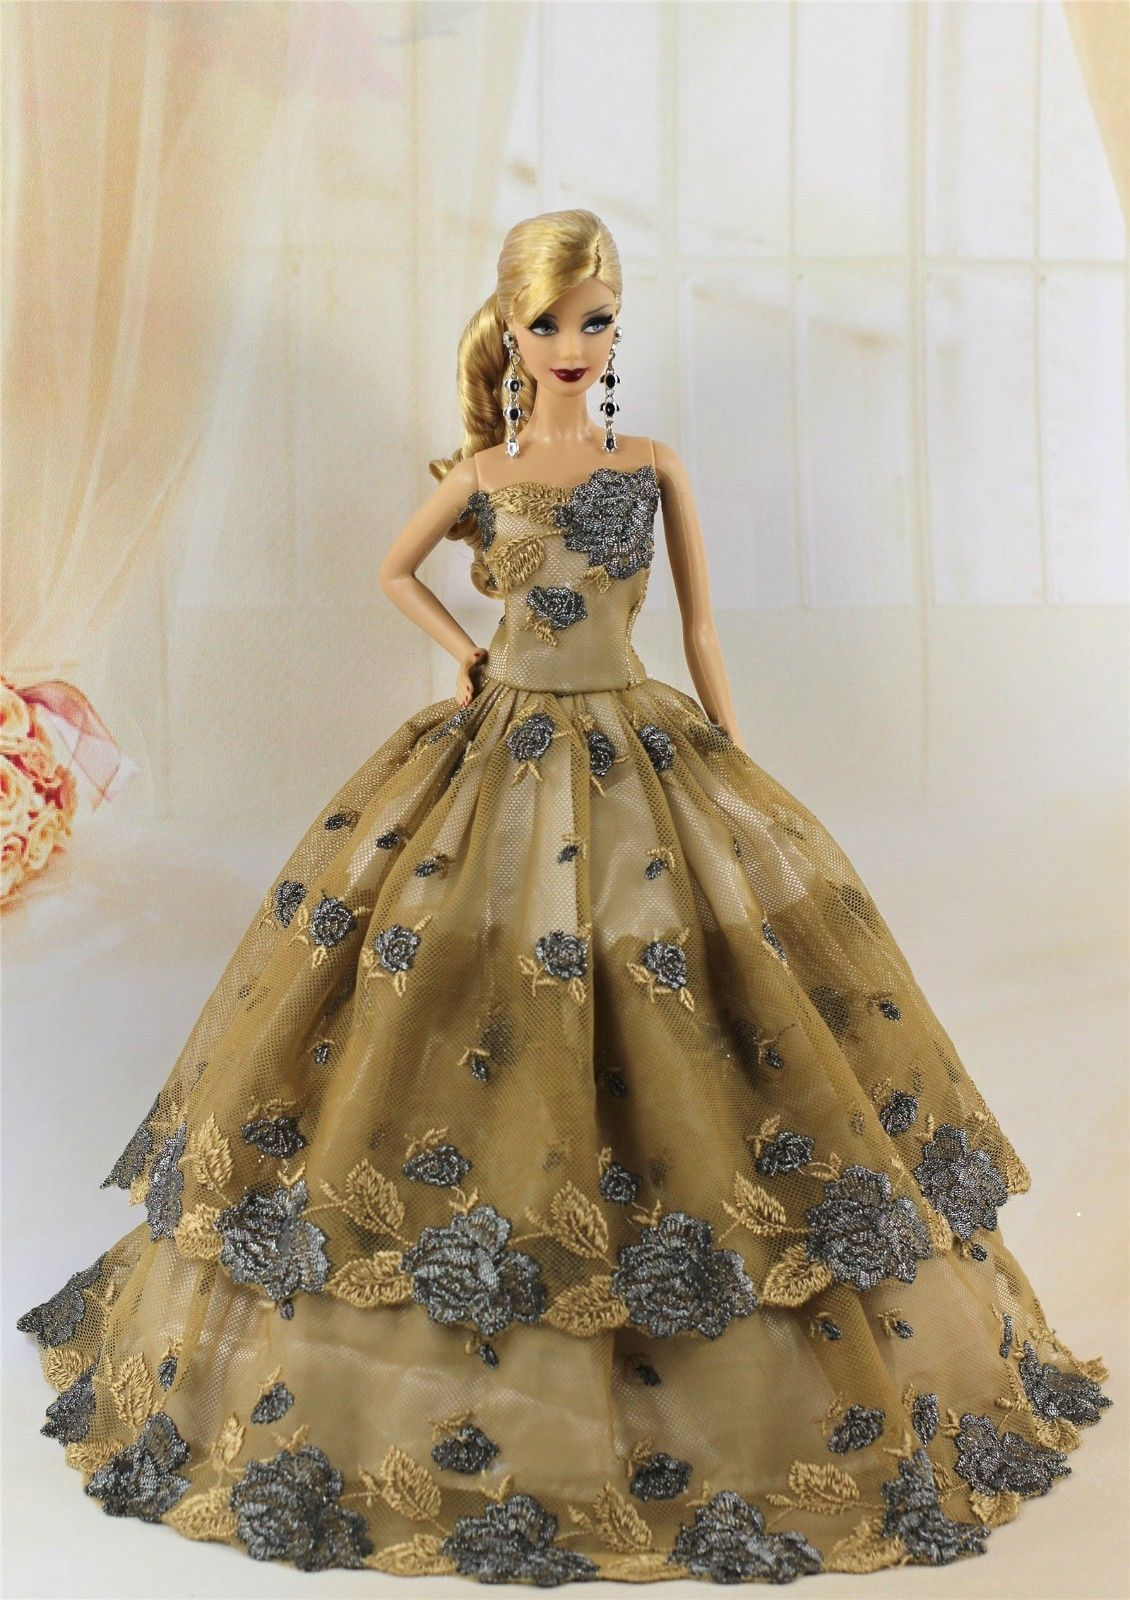 Fashion Princess Party Dress//Wedding Clothes//Gown For 11.5in.Doll H10